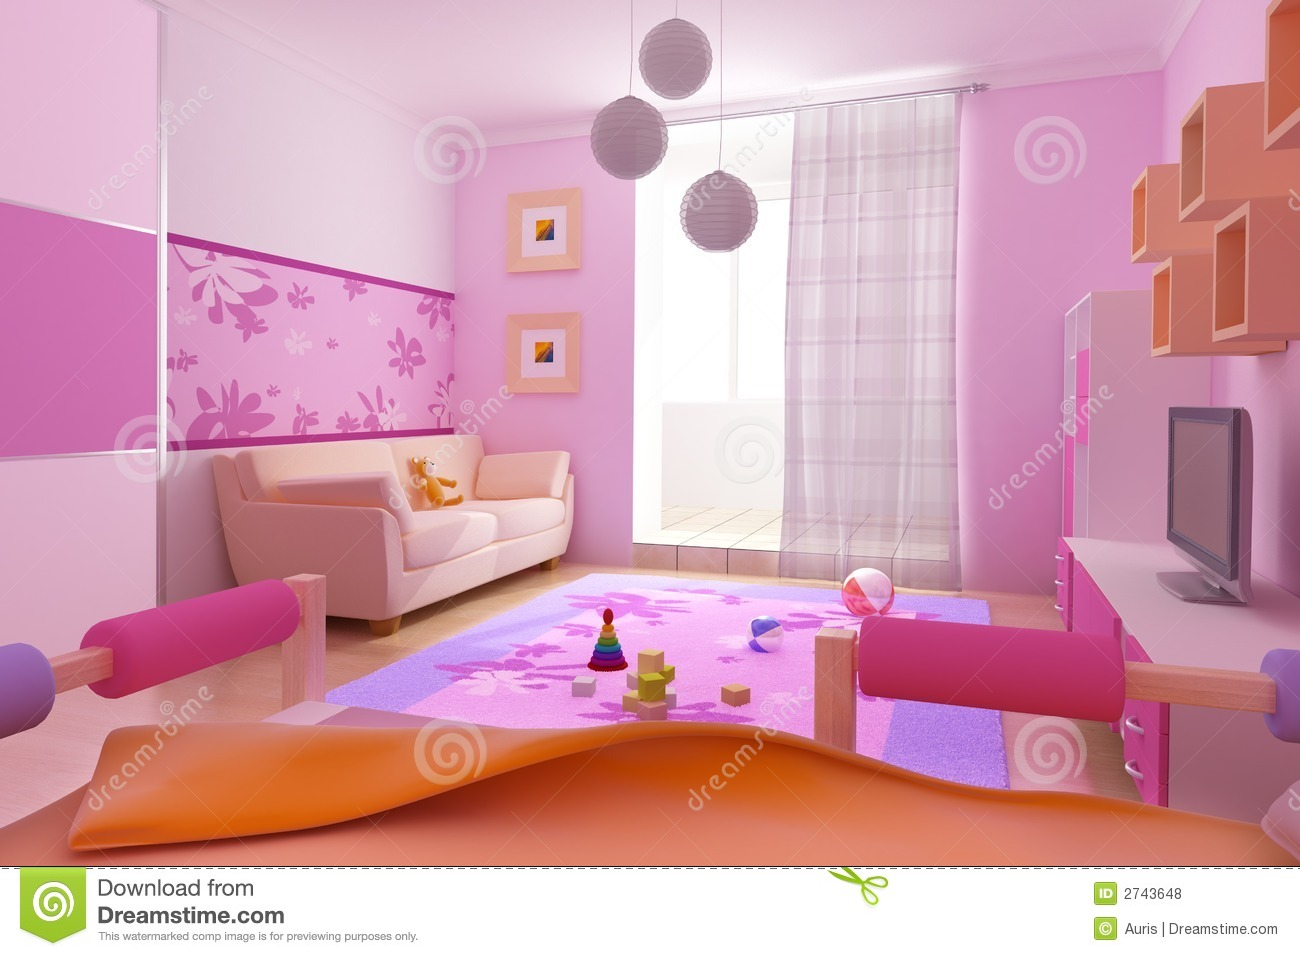 Children 39 s room interior stock illustration image of loft 2743648 - Kids room image ...